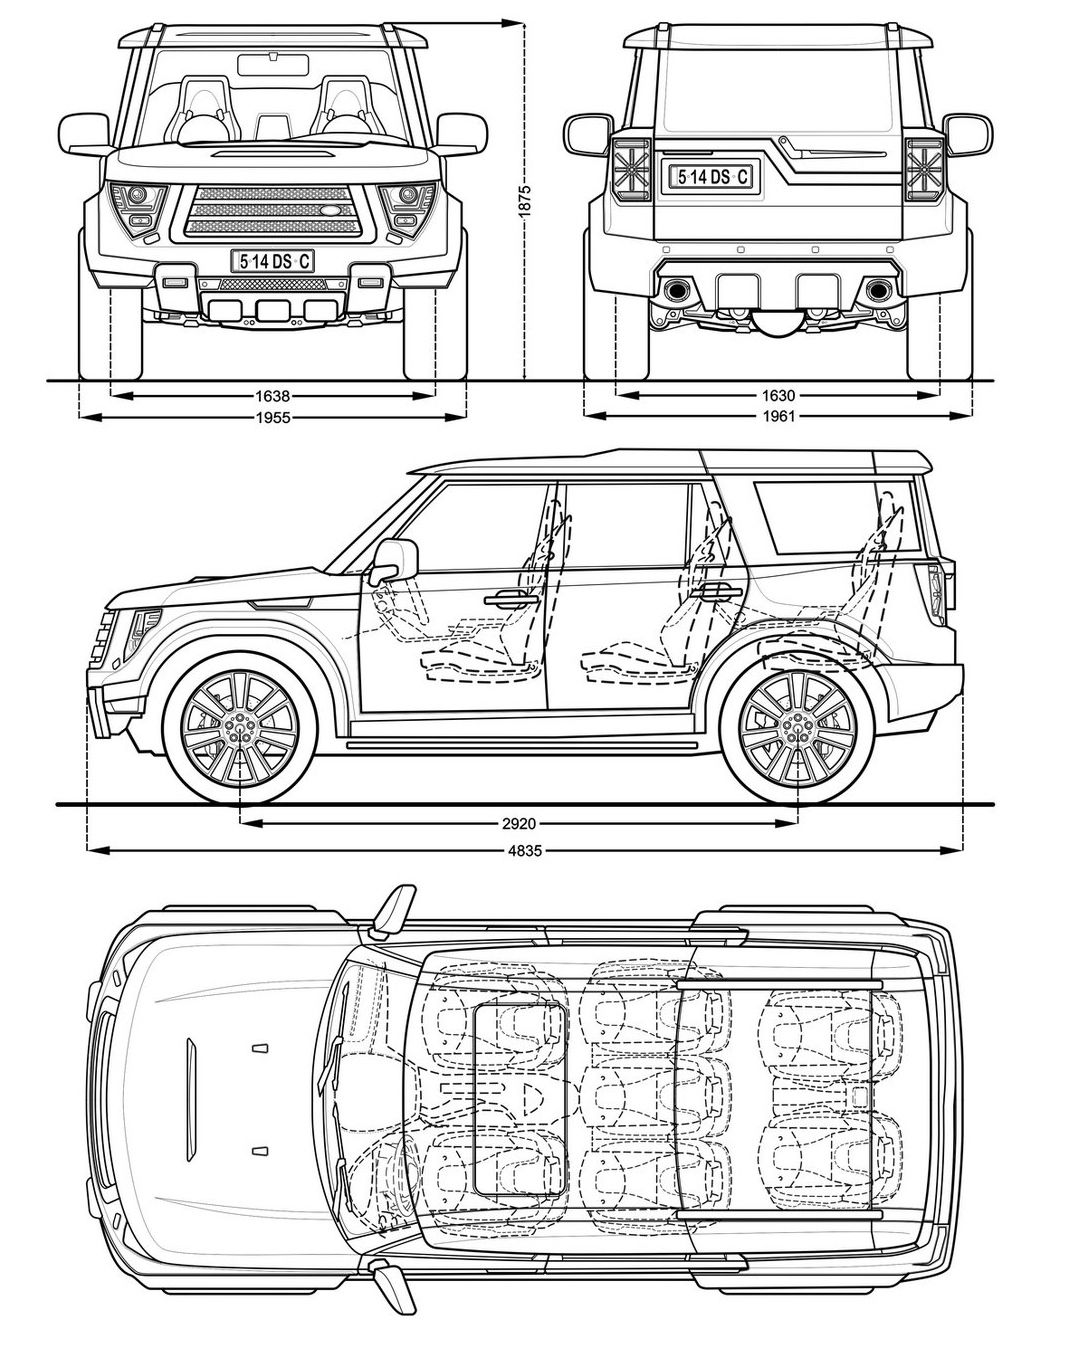 Image result for porsche 956 c blueprint | Blueprints | Pinterest ...